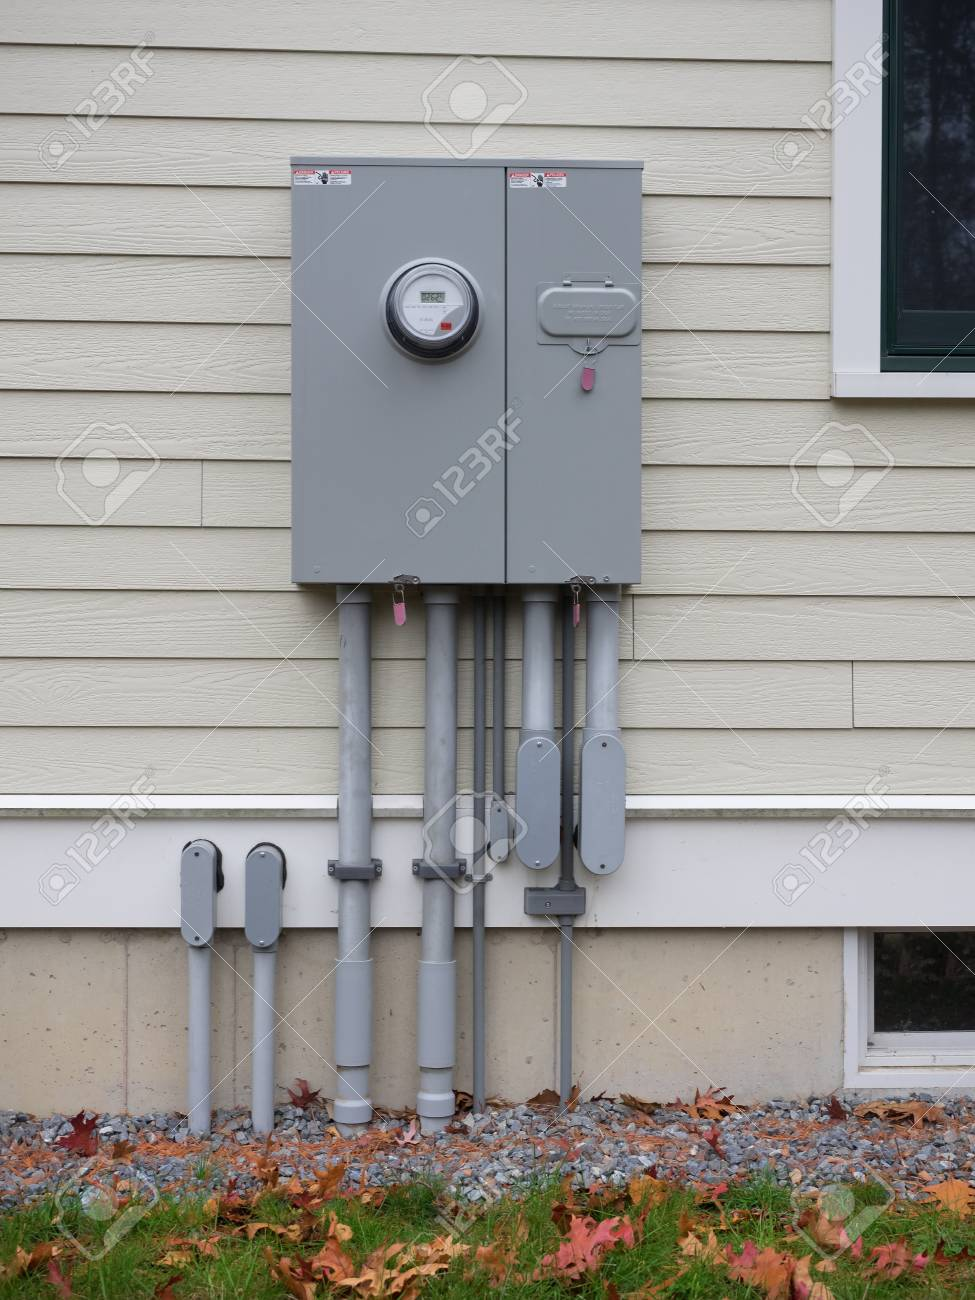 Outdoor Electrical Panel On New House Stock Photo, Picture And ...